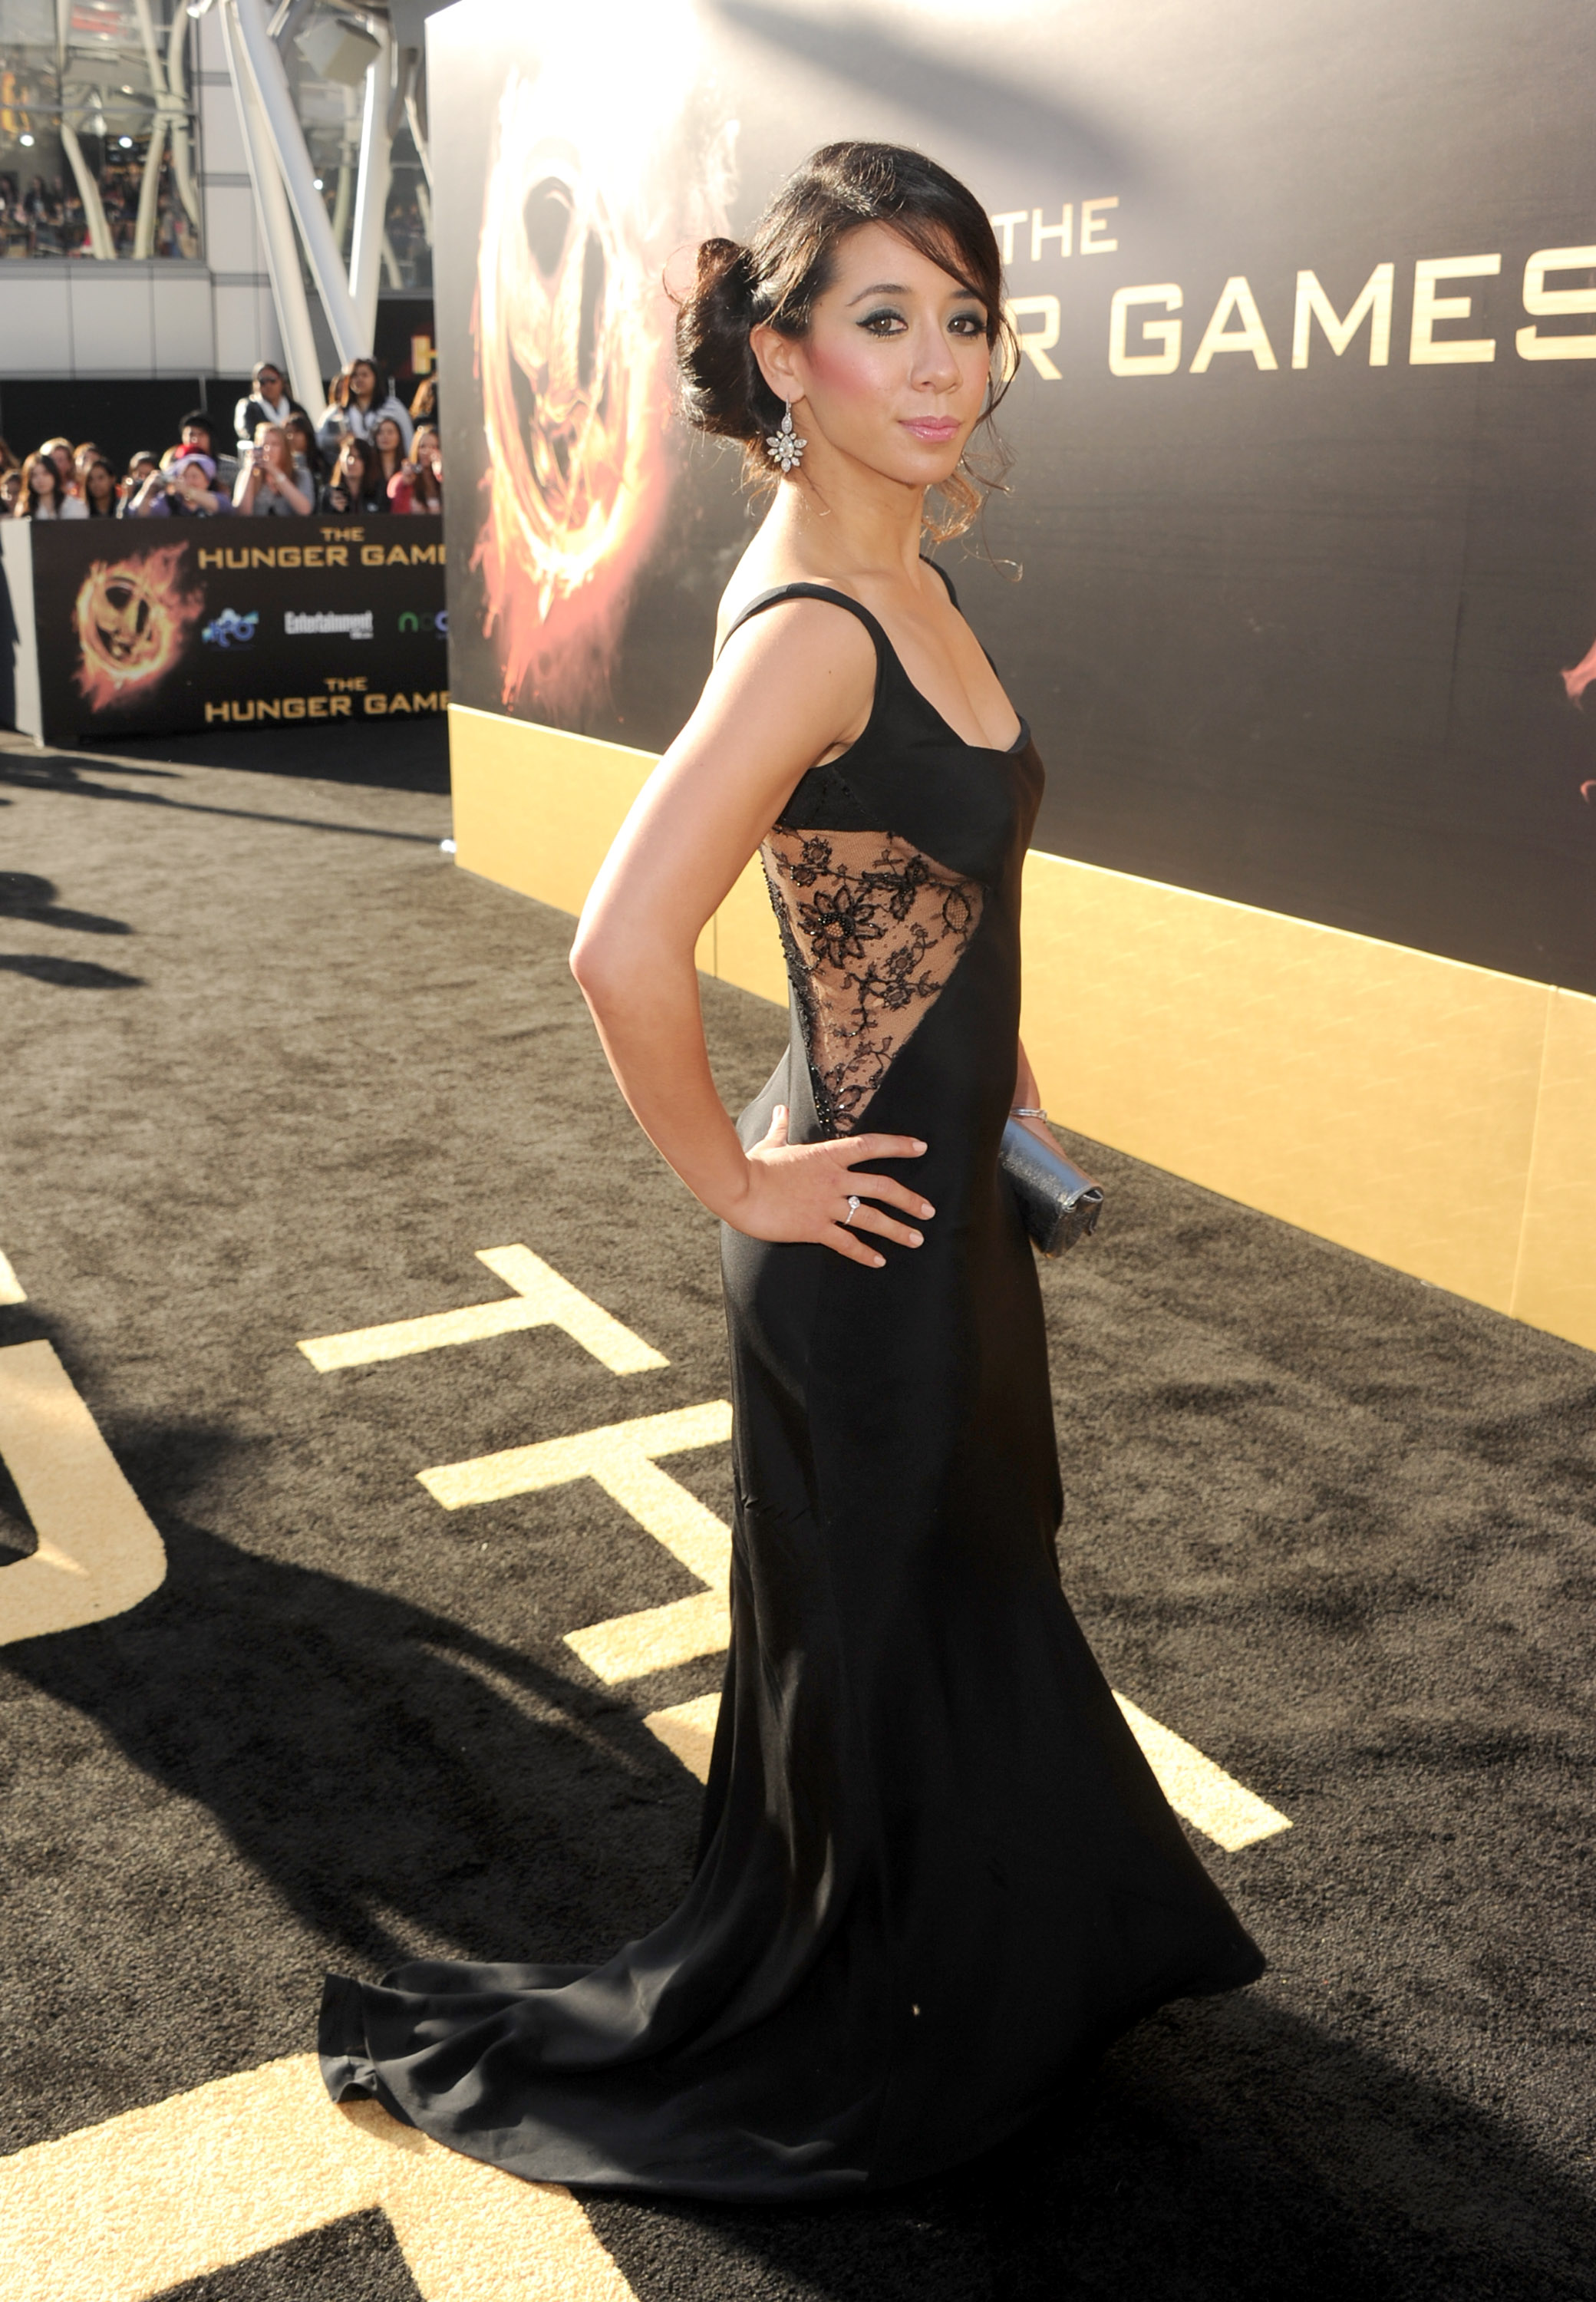 The Hunger Games World Premiere Pics —See Miley, Liam, Josh, and Jennifer!